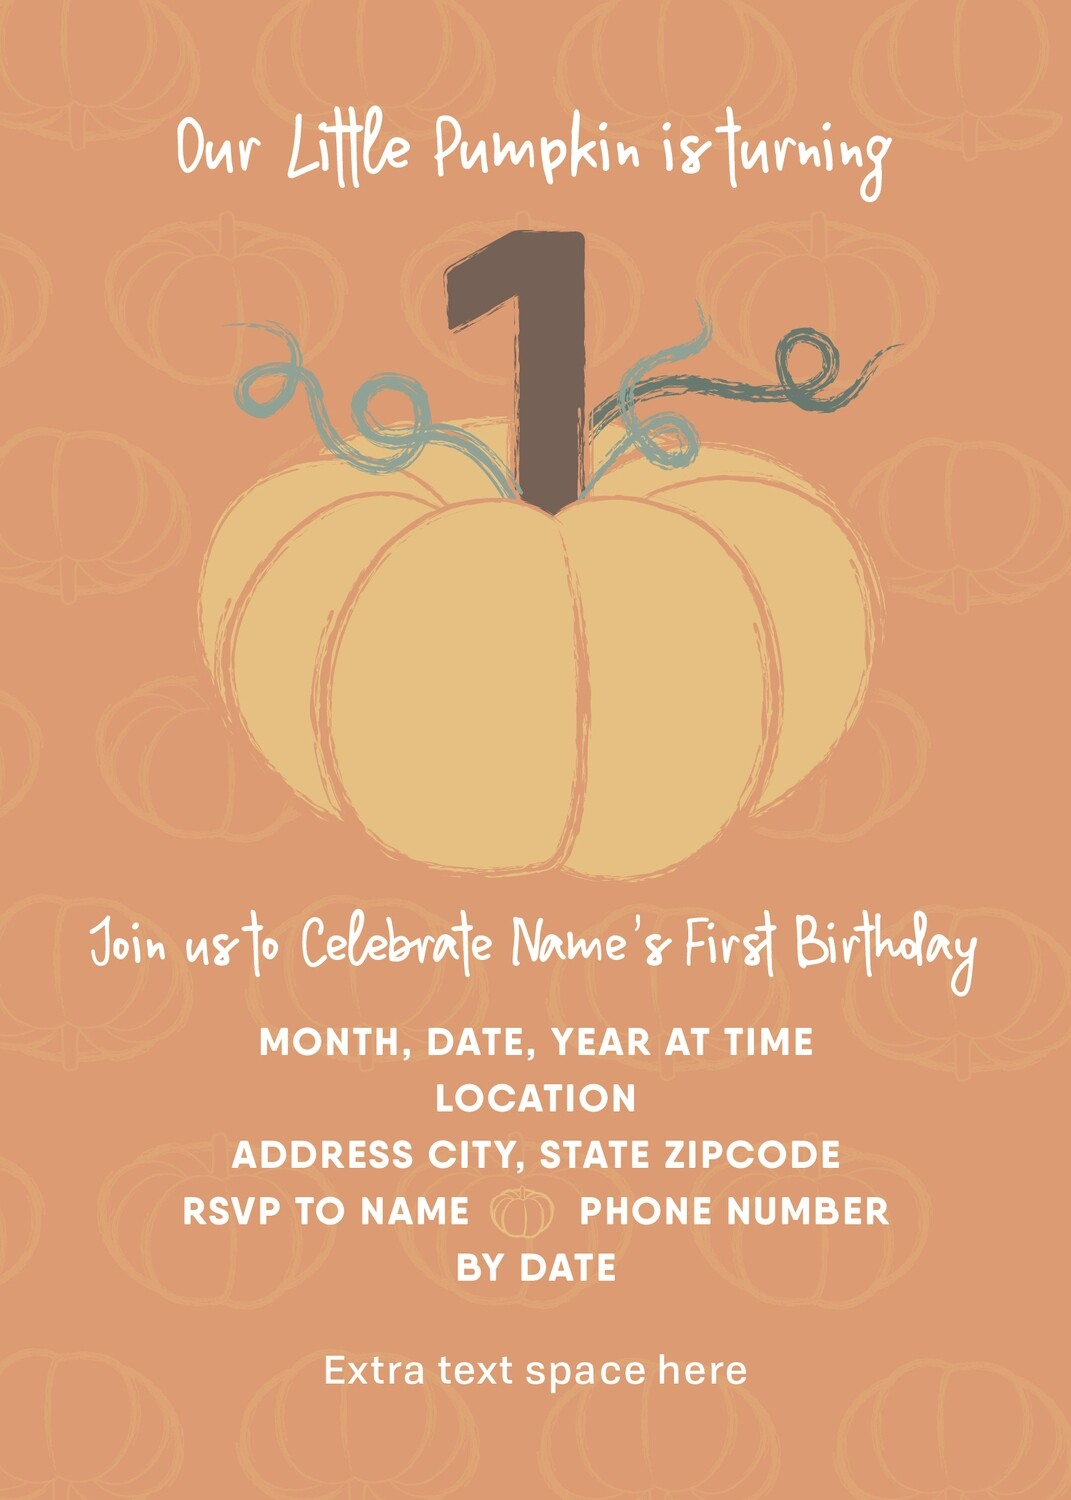 Fall 1st Birthday Invitation - Little Pumpkin - Orange - Customized